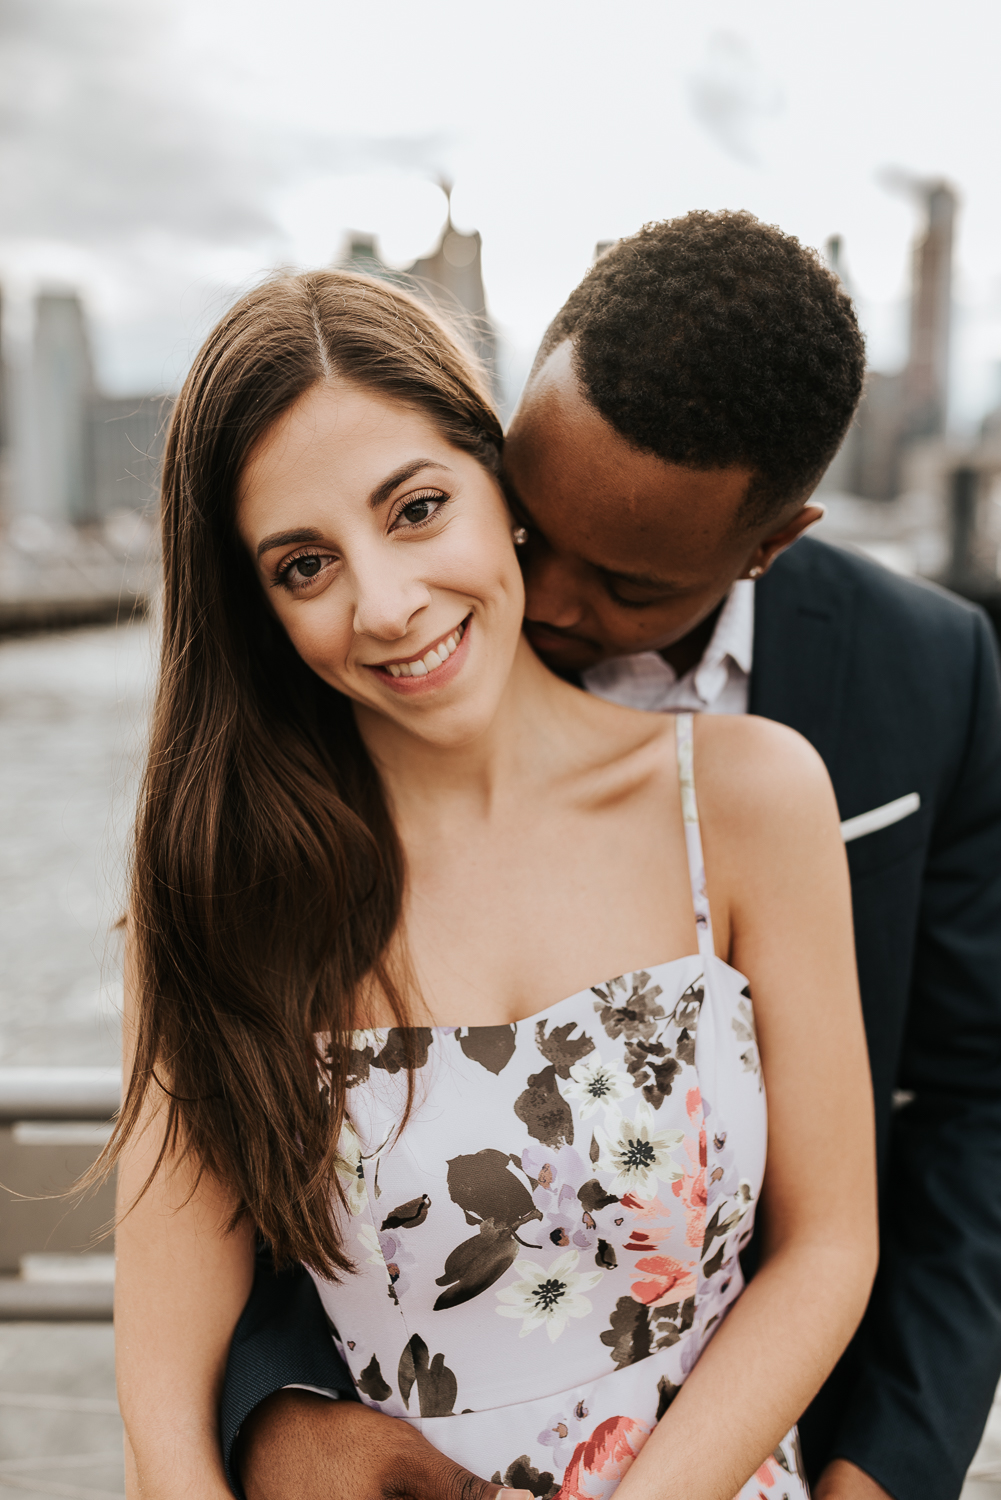 East Coast Engagement, Anniversary and Adventure Photographer | MORGAN ELLIS | Couples Photography | Romantic Brooklyn Engagement Session